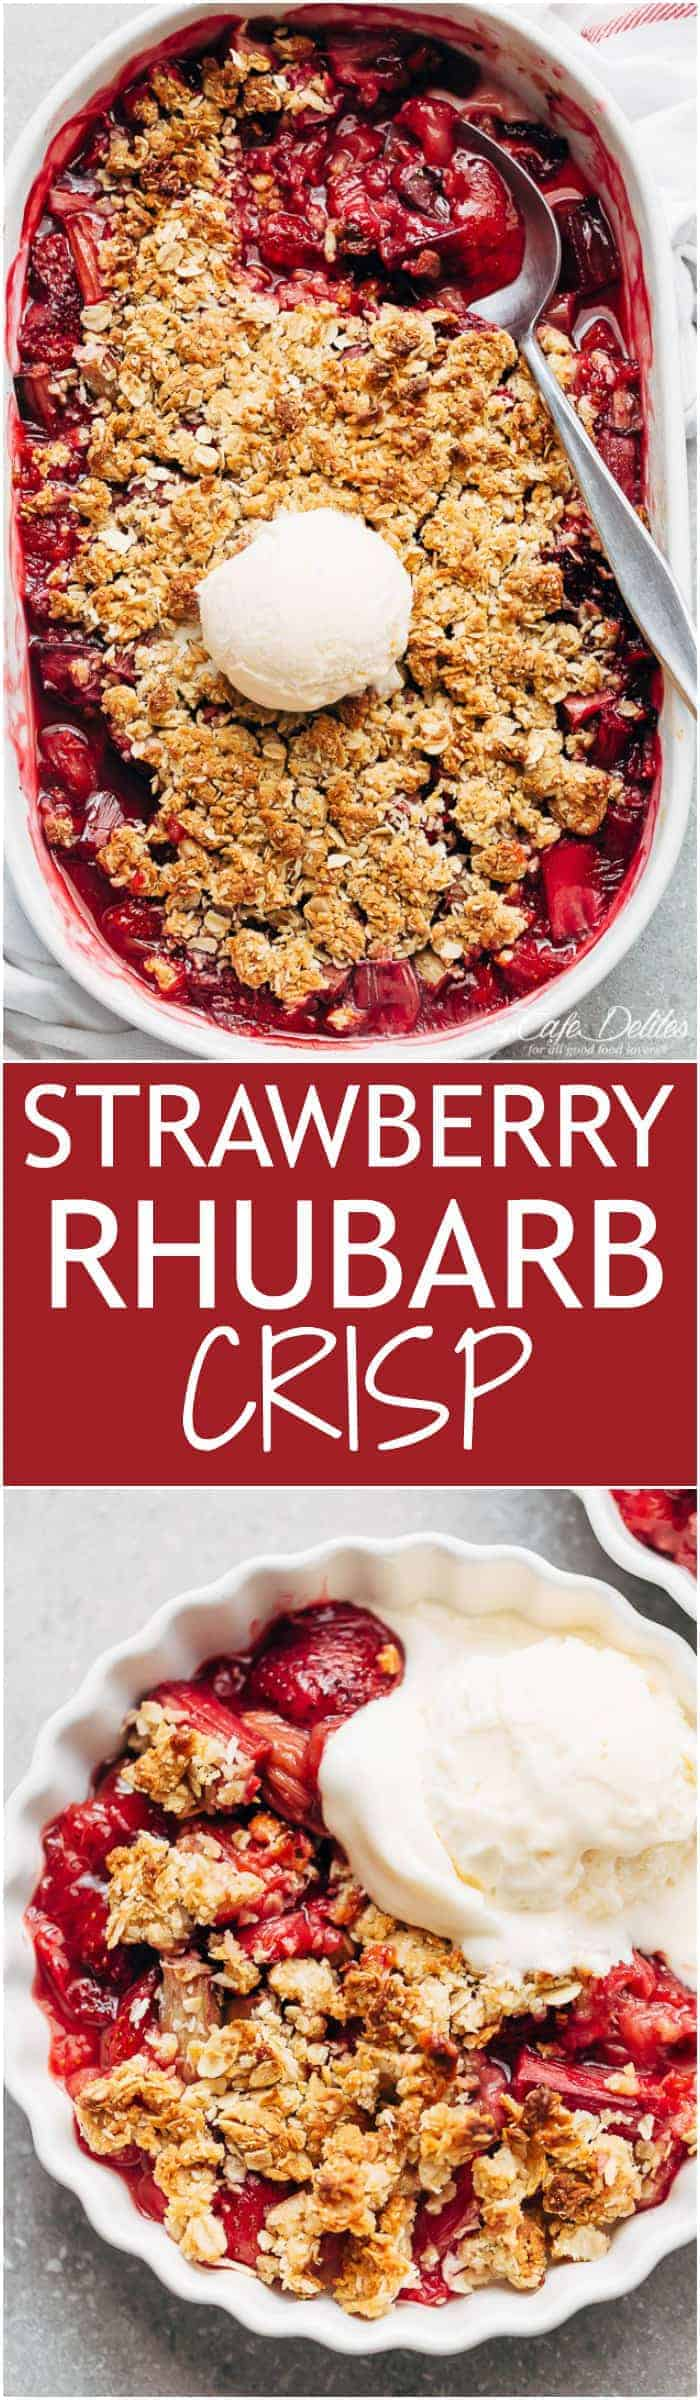 Strawberry Rhubarb Crisp is quick and easy to make desserts at only 263 calories per serve! Strawberries mix with rhubarb underneath an oatmeal cookie-like crisp! | https://cafedelites.com